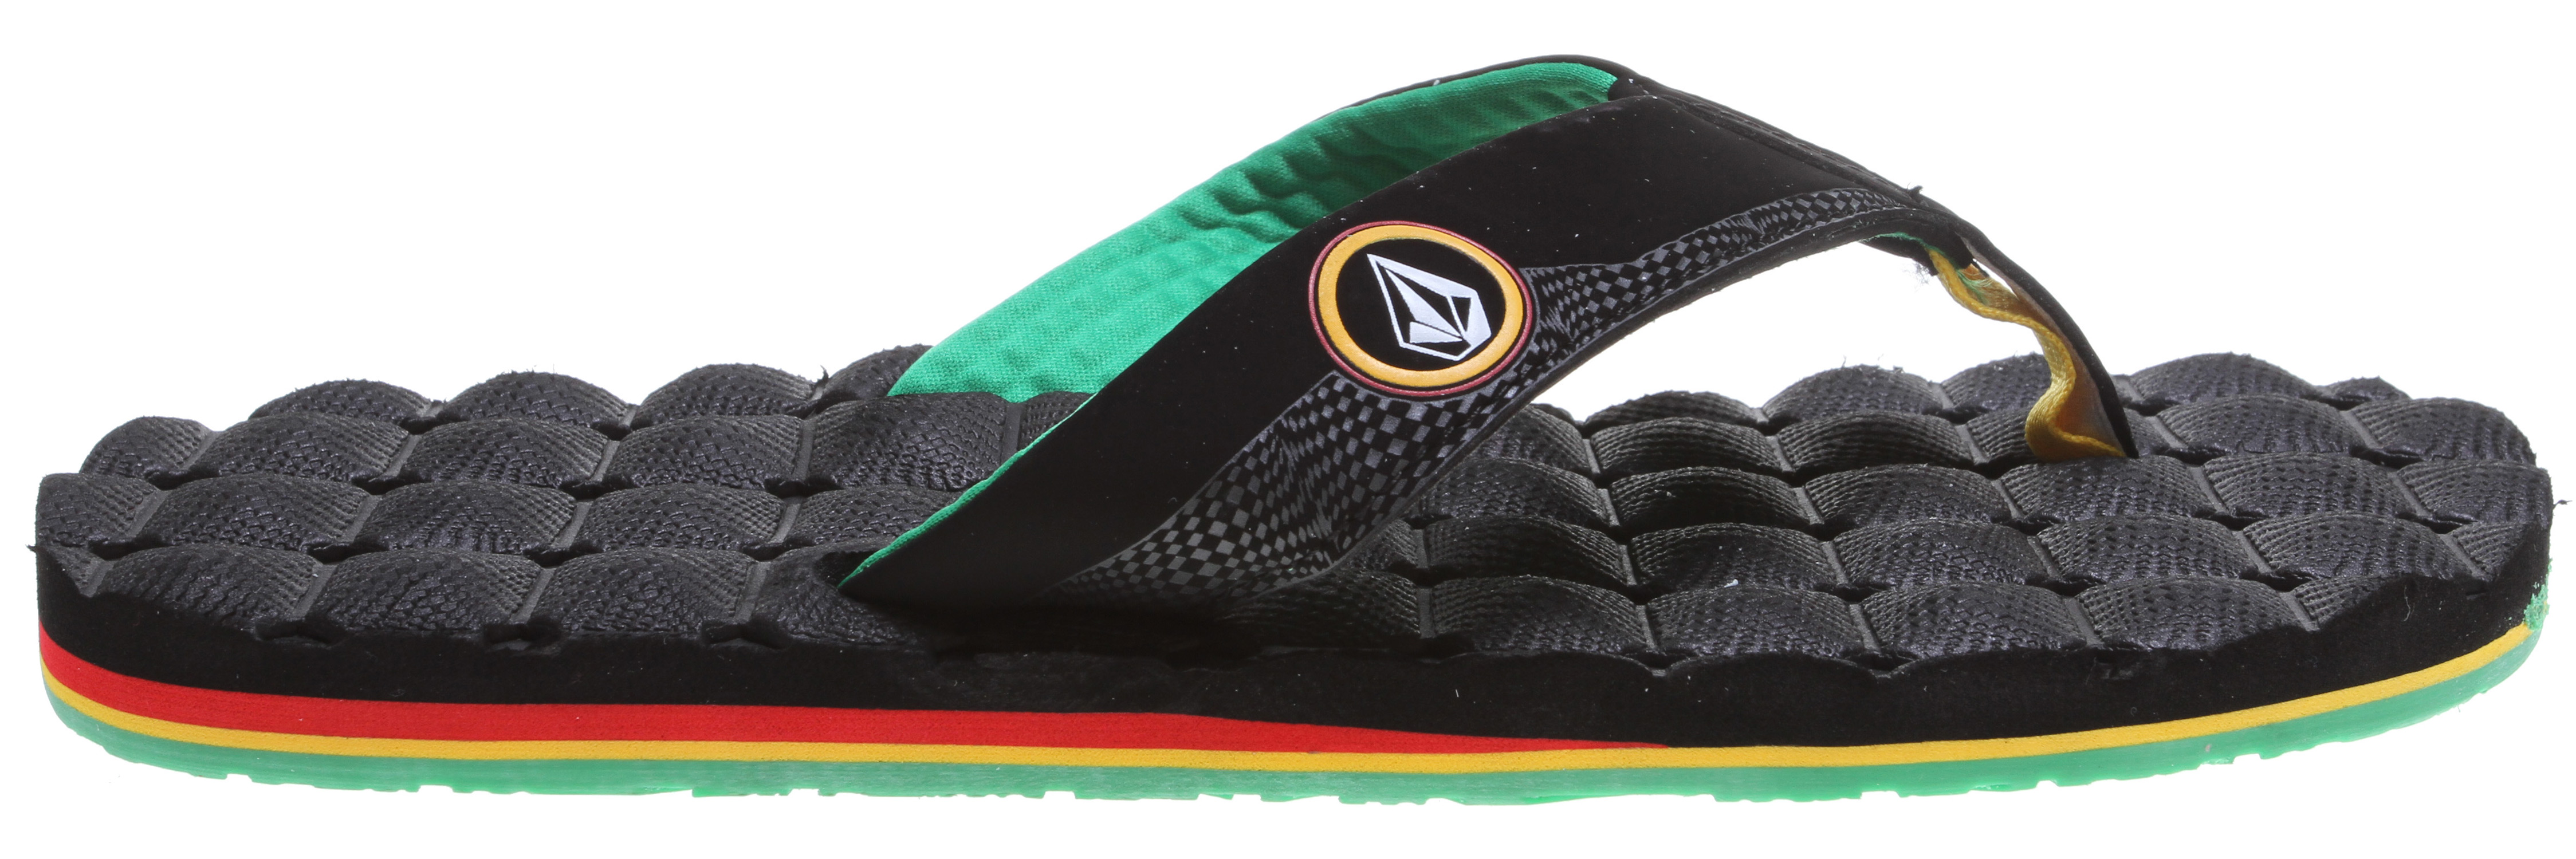 Surf Key Features of the Volcom Recliner Sandals: Synthetic Nubuck strap with deboss pattern, print logo details and molded textile lining Exceedingly soft molded top sole Contour molded, triple density EVA insole with arch support Molded outsole - $24.95